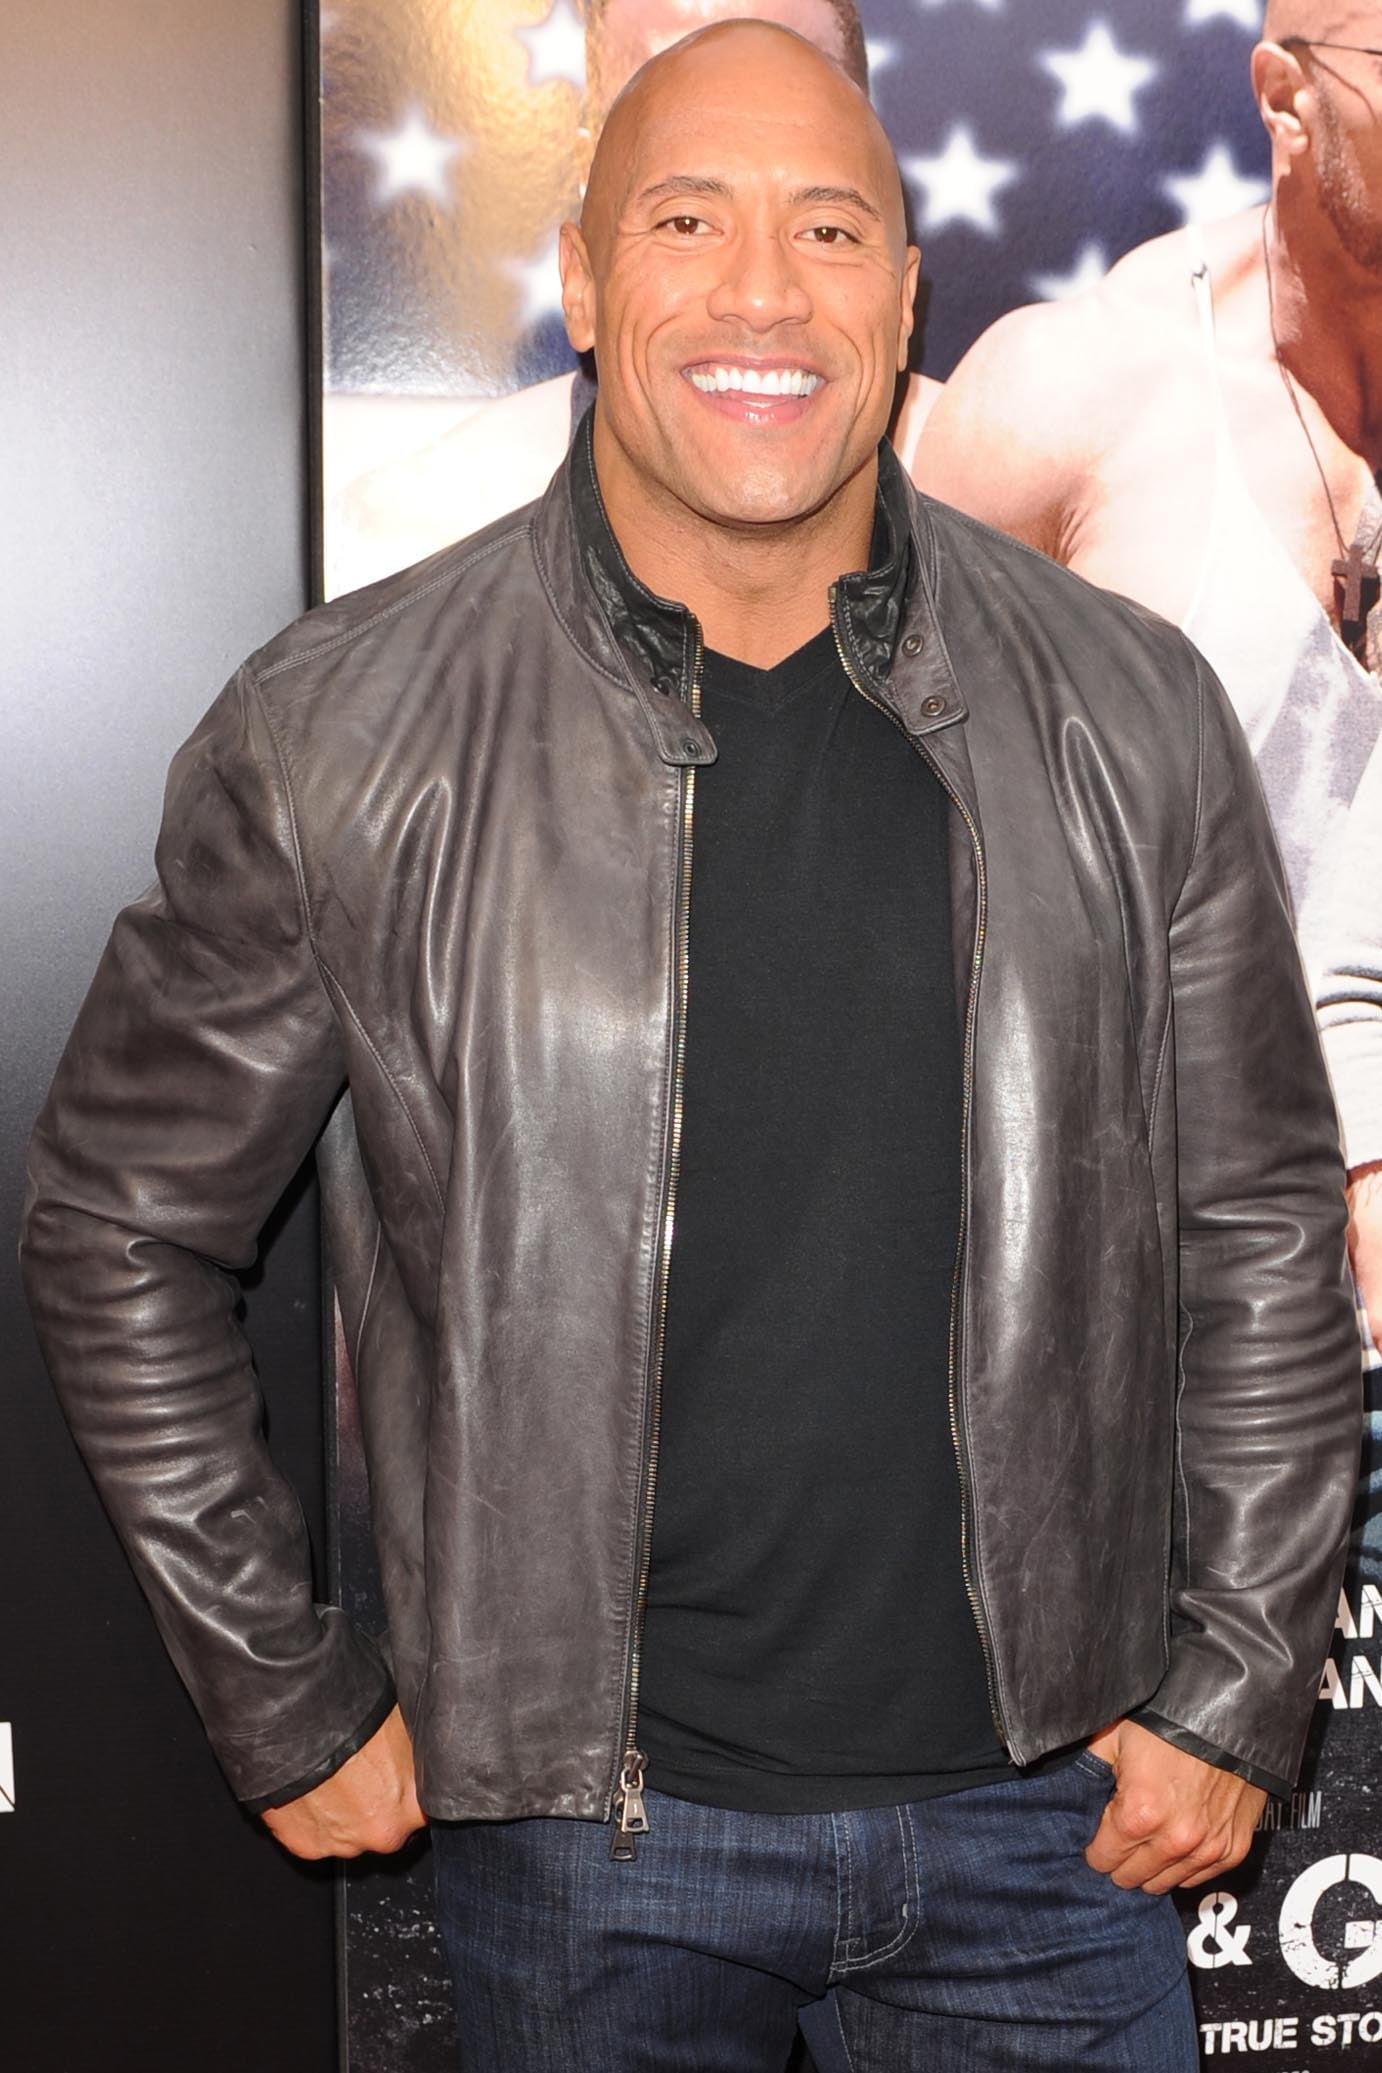 """Dwayne Johnson will star in San Andreas, an earthquake disaster movie. He'll play a """"rugged rescue pilot"""" attempting to save his daughter after a devastating quake hits California."""